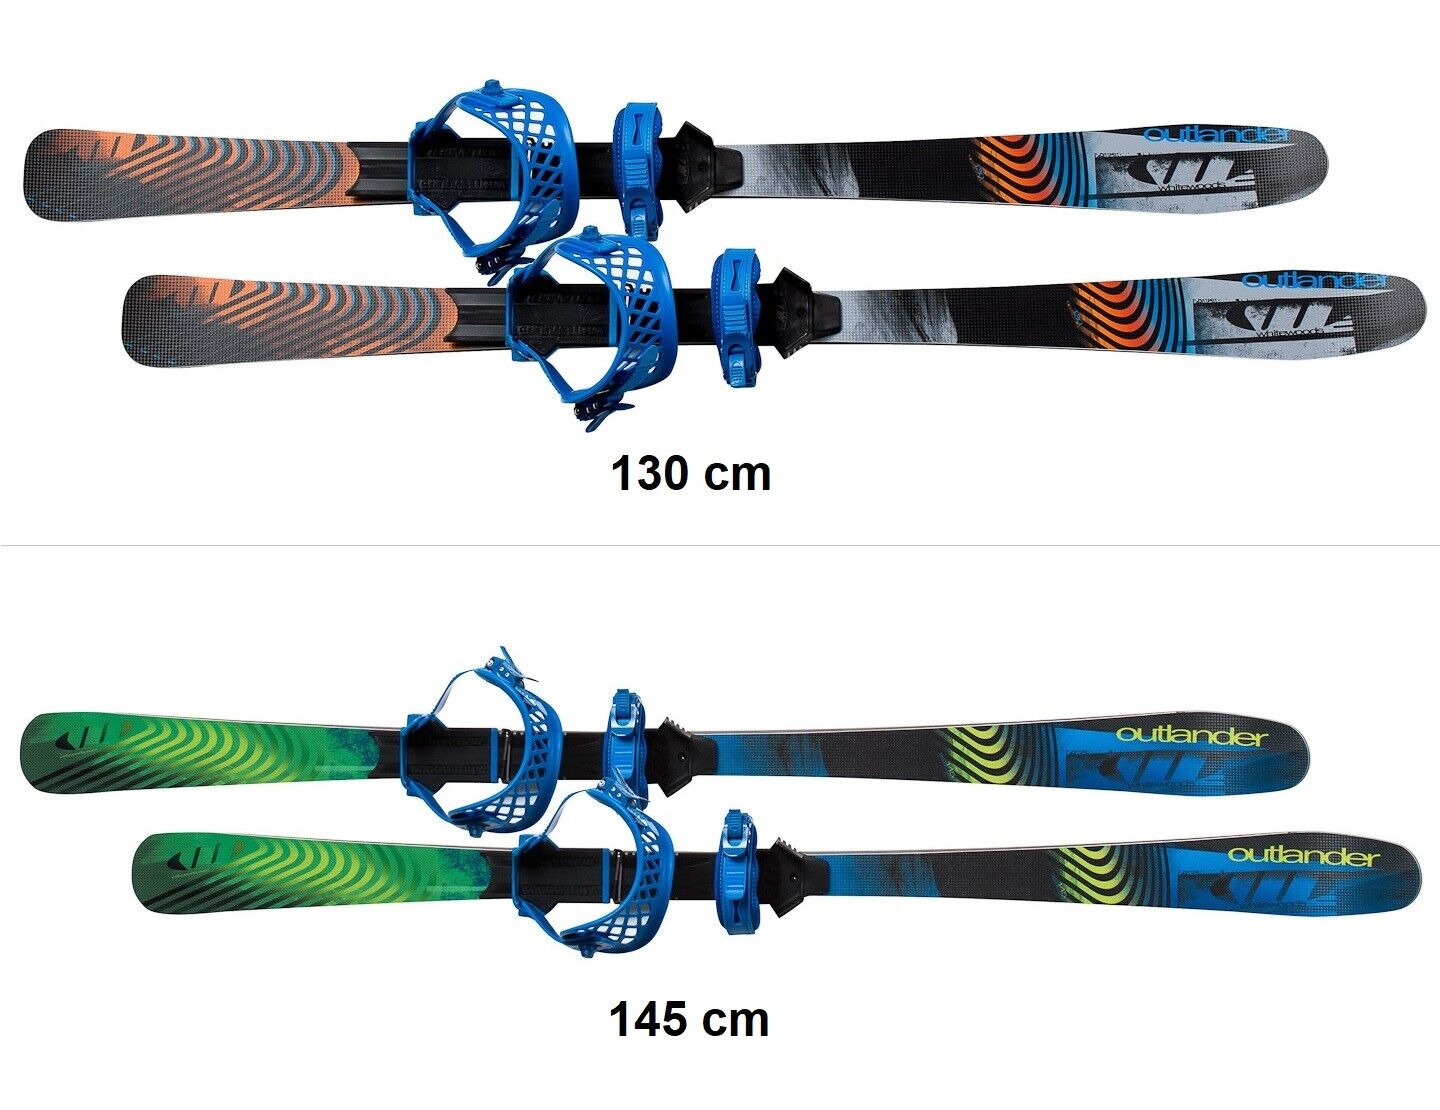 как выглядит Whitewoods OUTLANDER Cross Country Skis Bindings - Snowshoe Grip, Nordic Glide фото